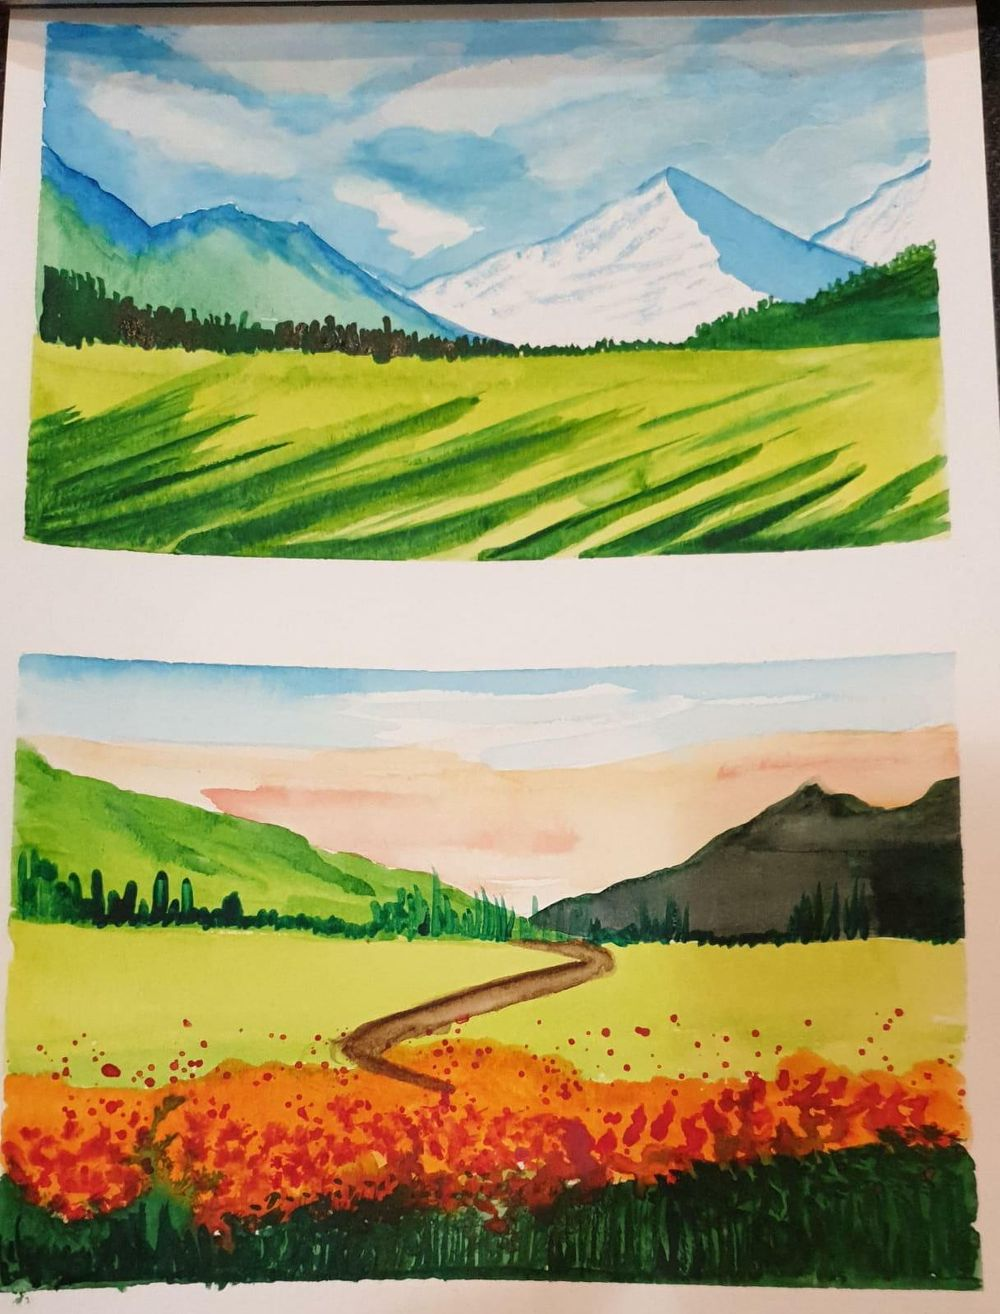 watercolor landscape master class with z - image 2 - student project